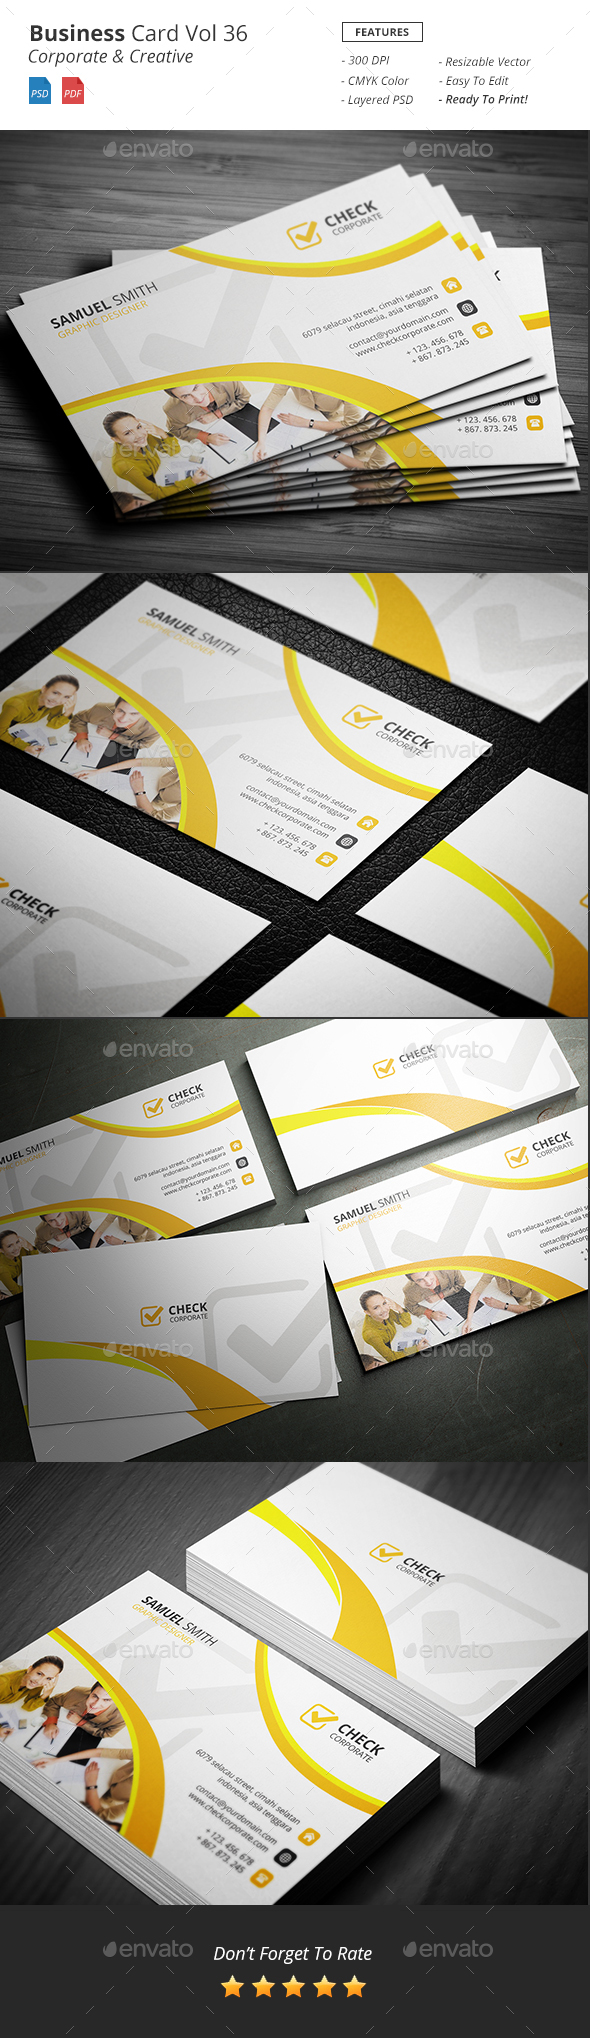 Corporate Business Card Vol 36 - Corporate Business Cards